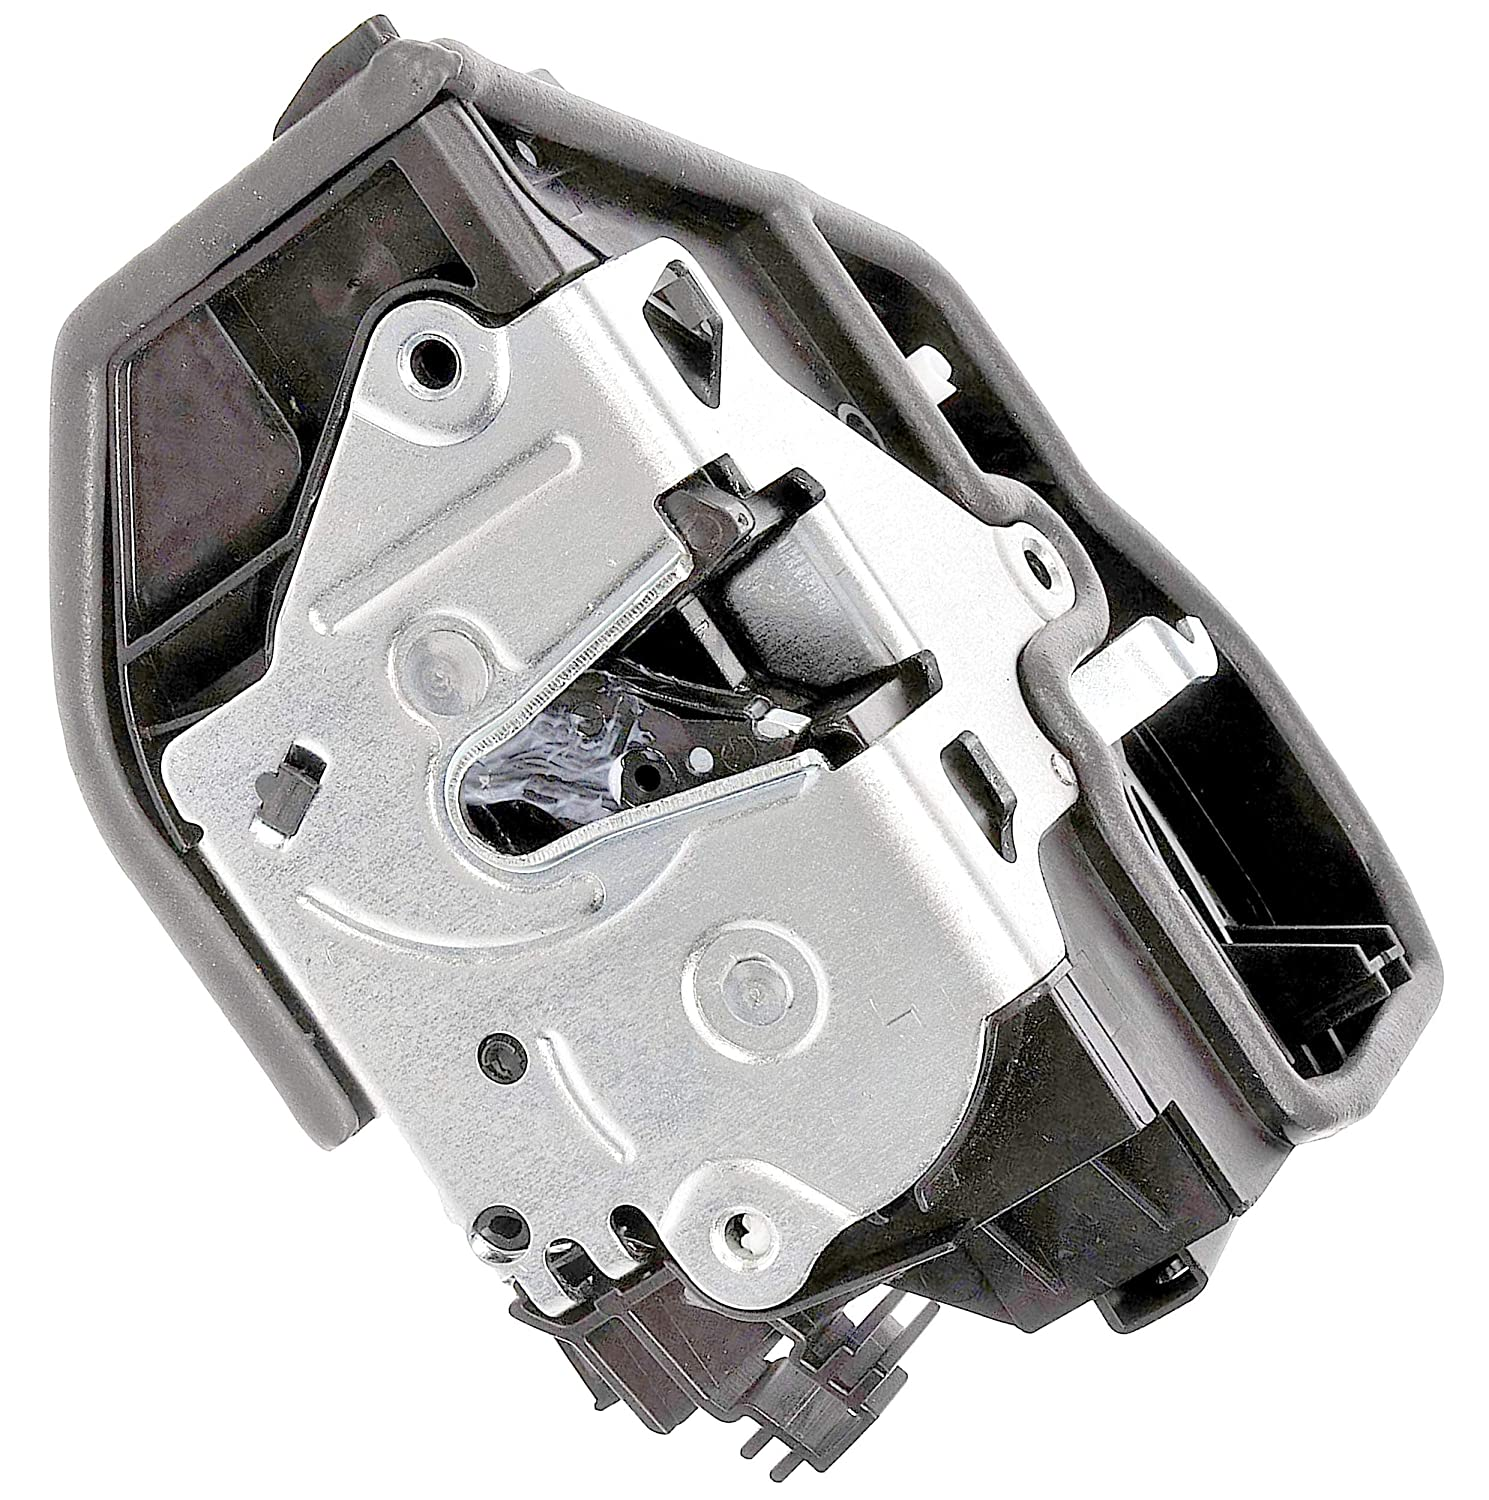 APDTY 048911 Power Door Lock Actuator Motor & Latch Assembly Fits Front Left (Driver Side Front) On Numerous 2003-2016 BMW Anti-Theft Models; See Description (Replaces 51-21-7-202-143, 51217202143)